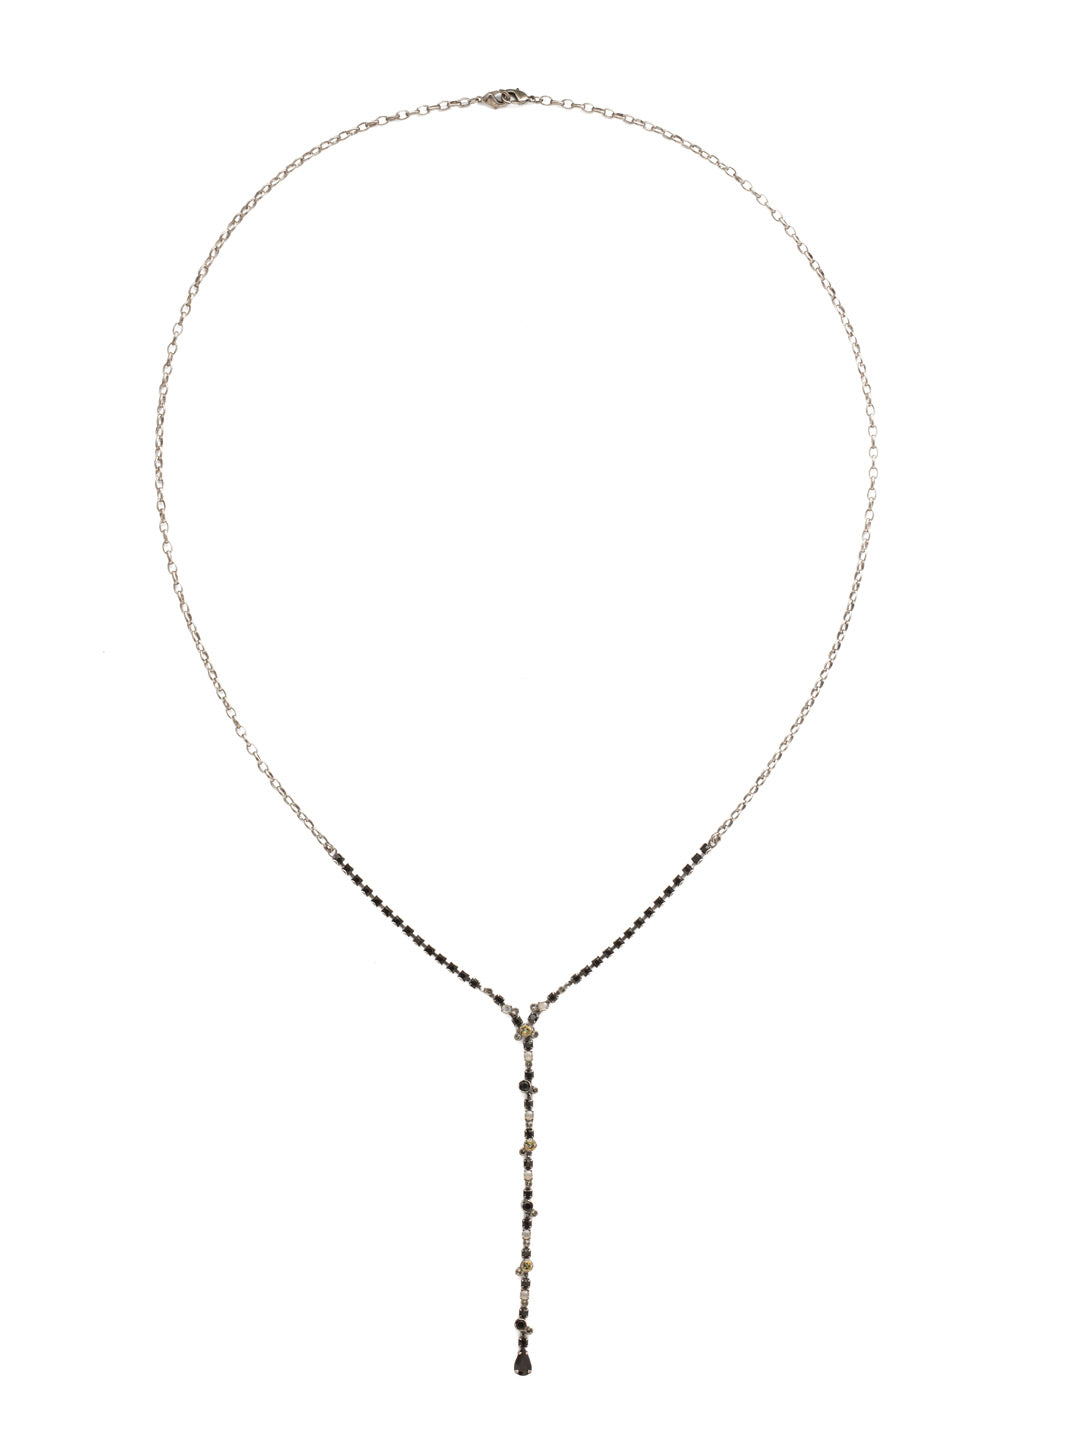 Honeysuckle Lariat Necklace - NDQ1ASBON